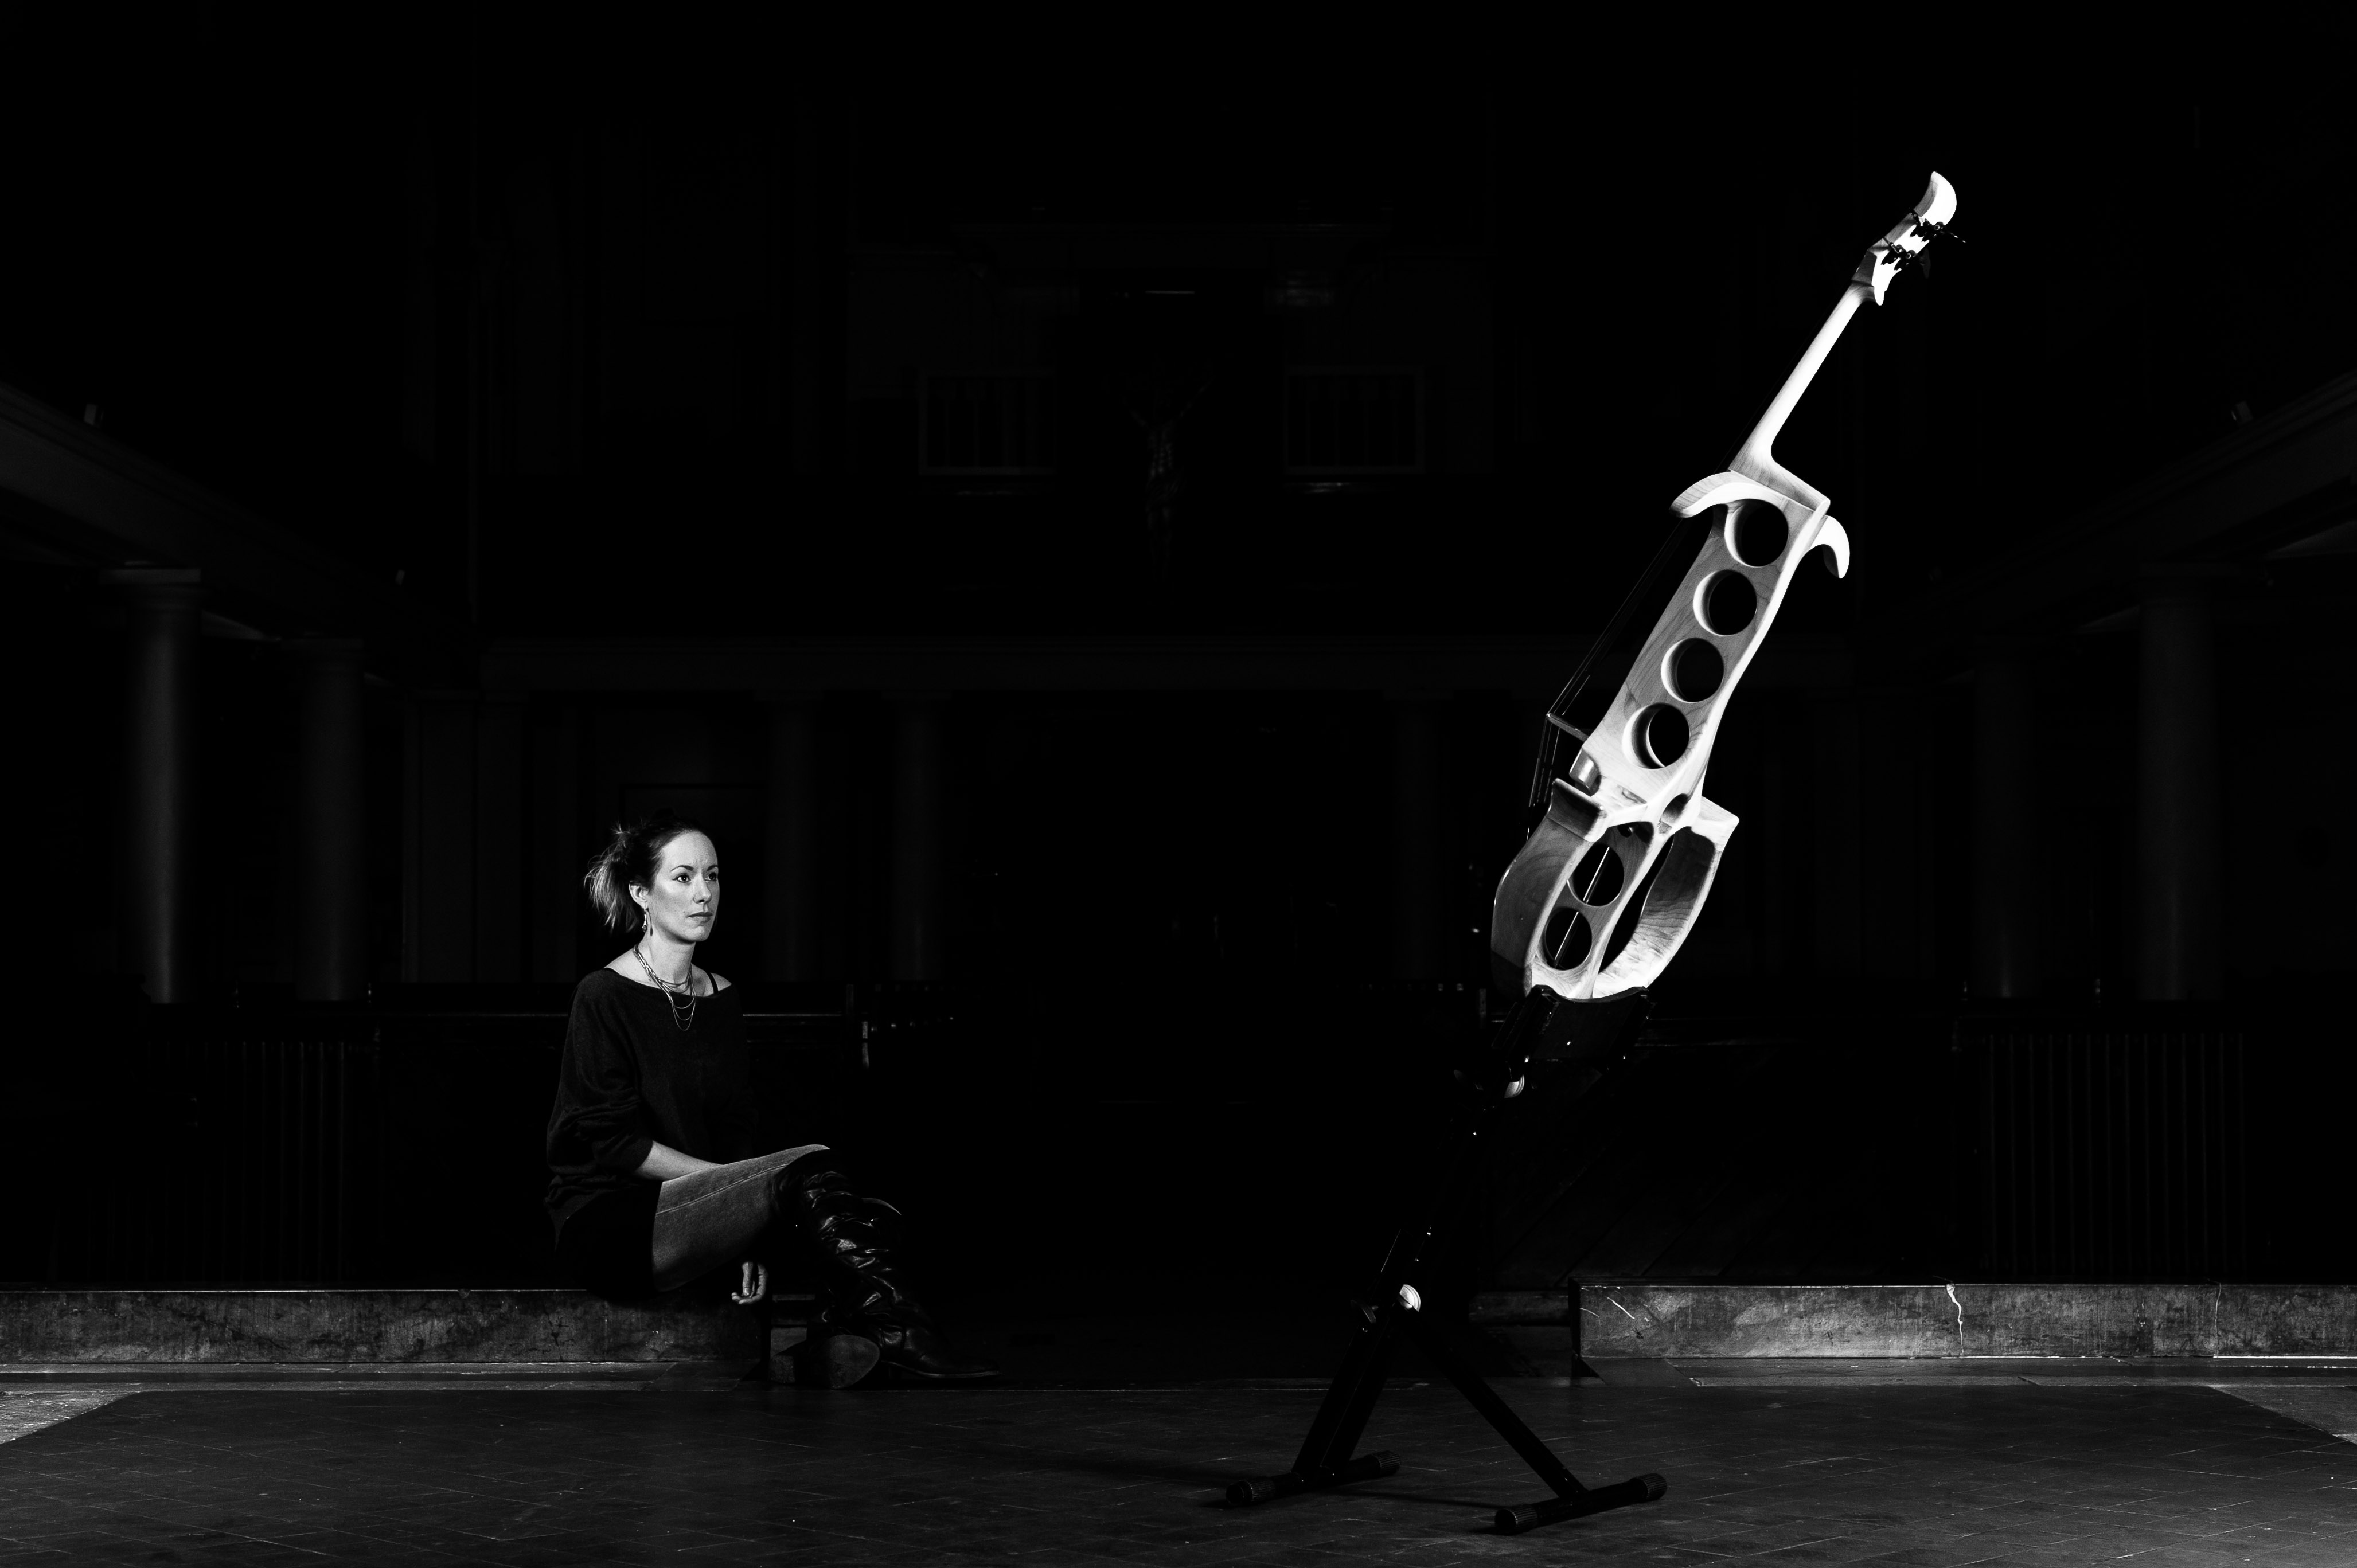 'Nocturnes' – London Concert 7th February 2015